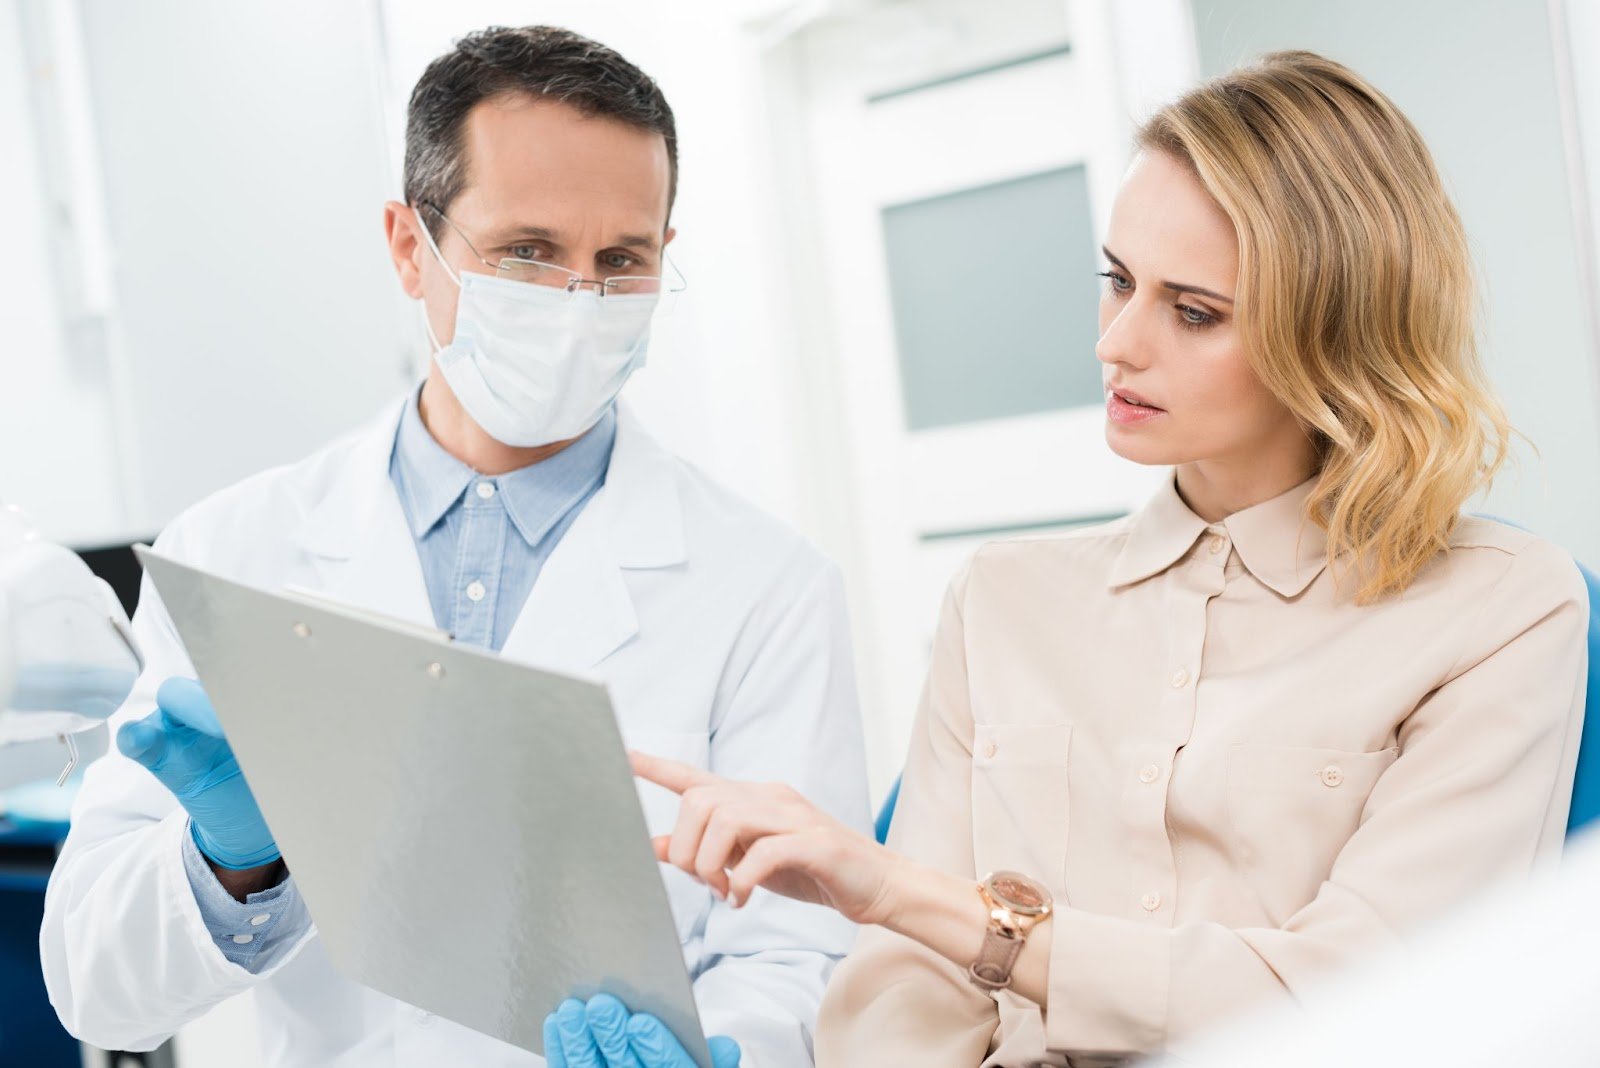 dentist reviewing a patient's chart with her